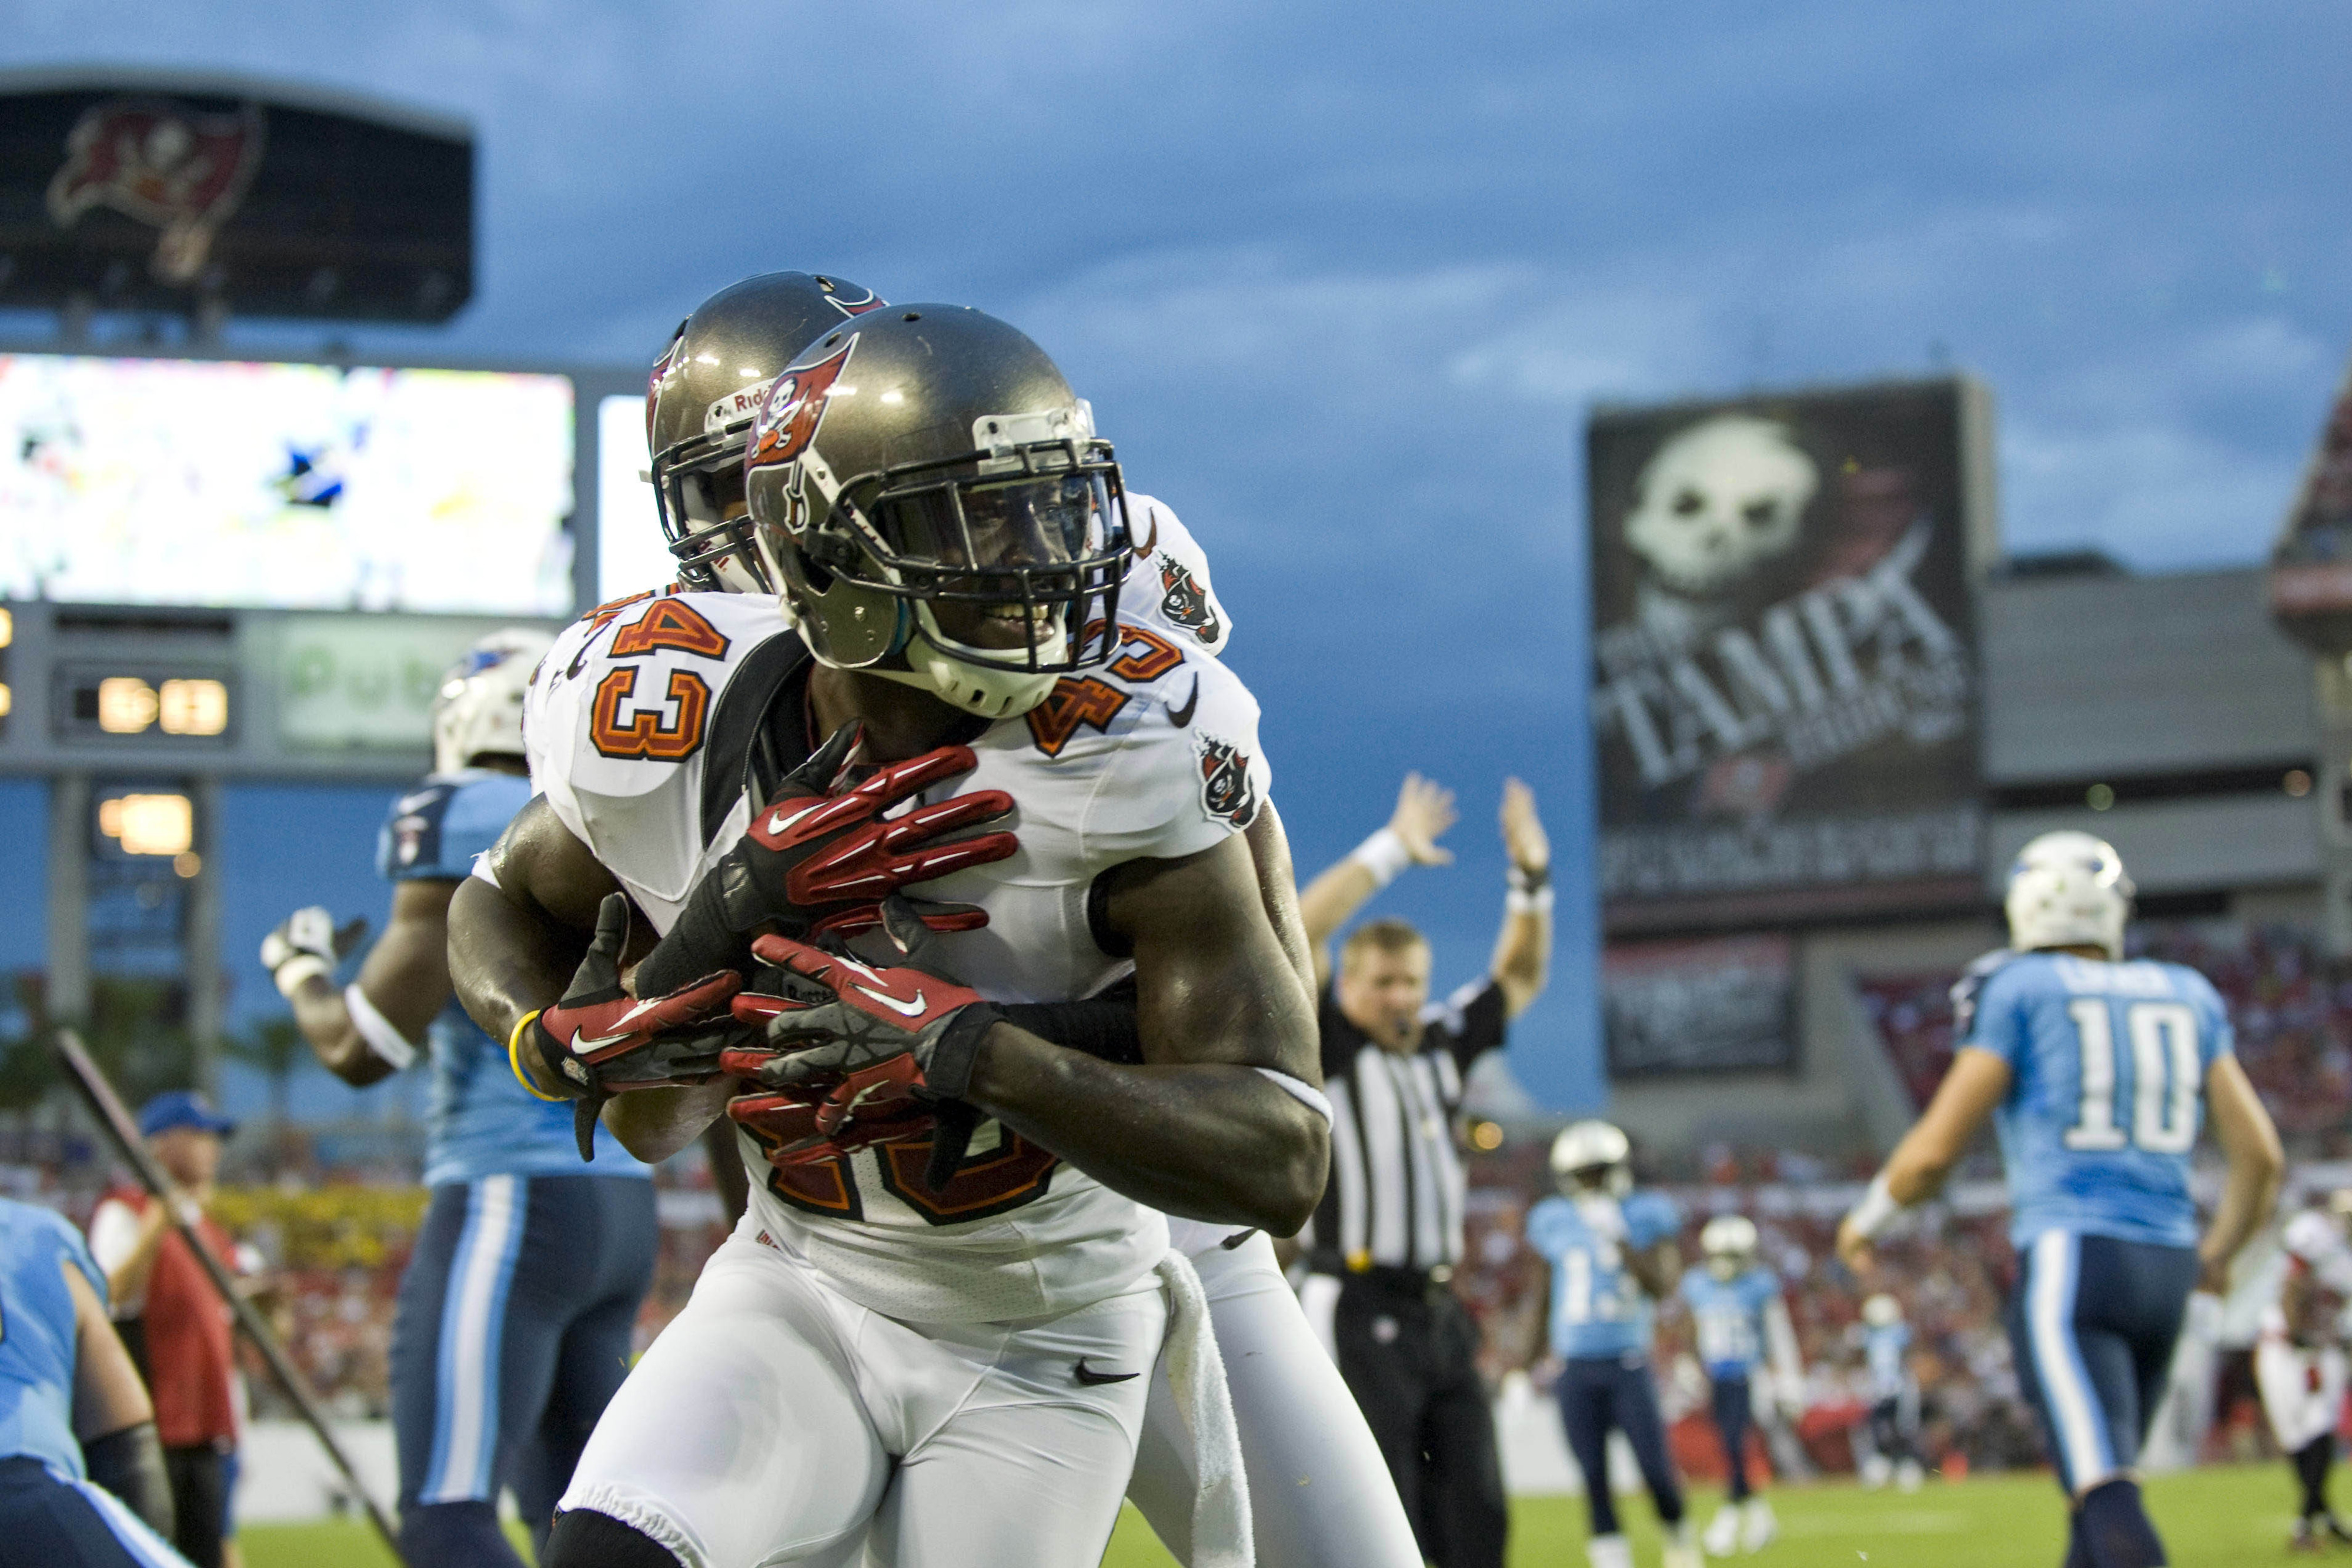 August 17, 2012; Tampa, FL, USA; Tampa Bay Buccaneers safety Ahmad Black (43) is congratulated by a teammate after an interception against the Tennessee Titans at Raymond James Stadium.  Mandatory Credit: Jeff Griffith-US PRESSWIRE